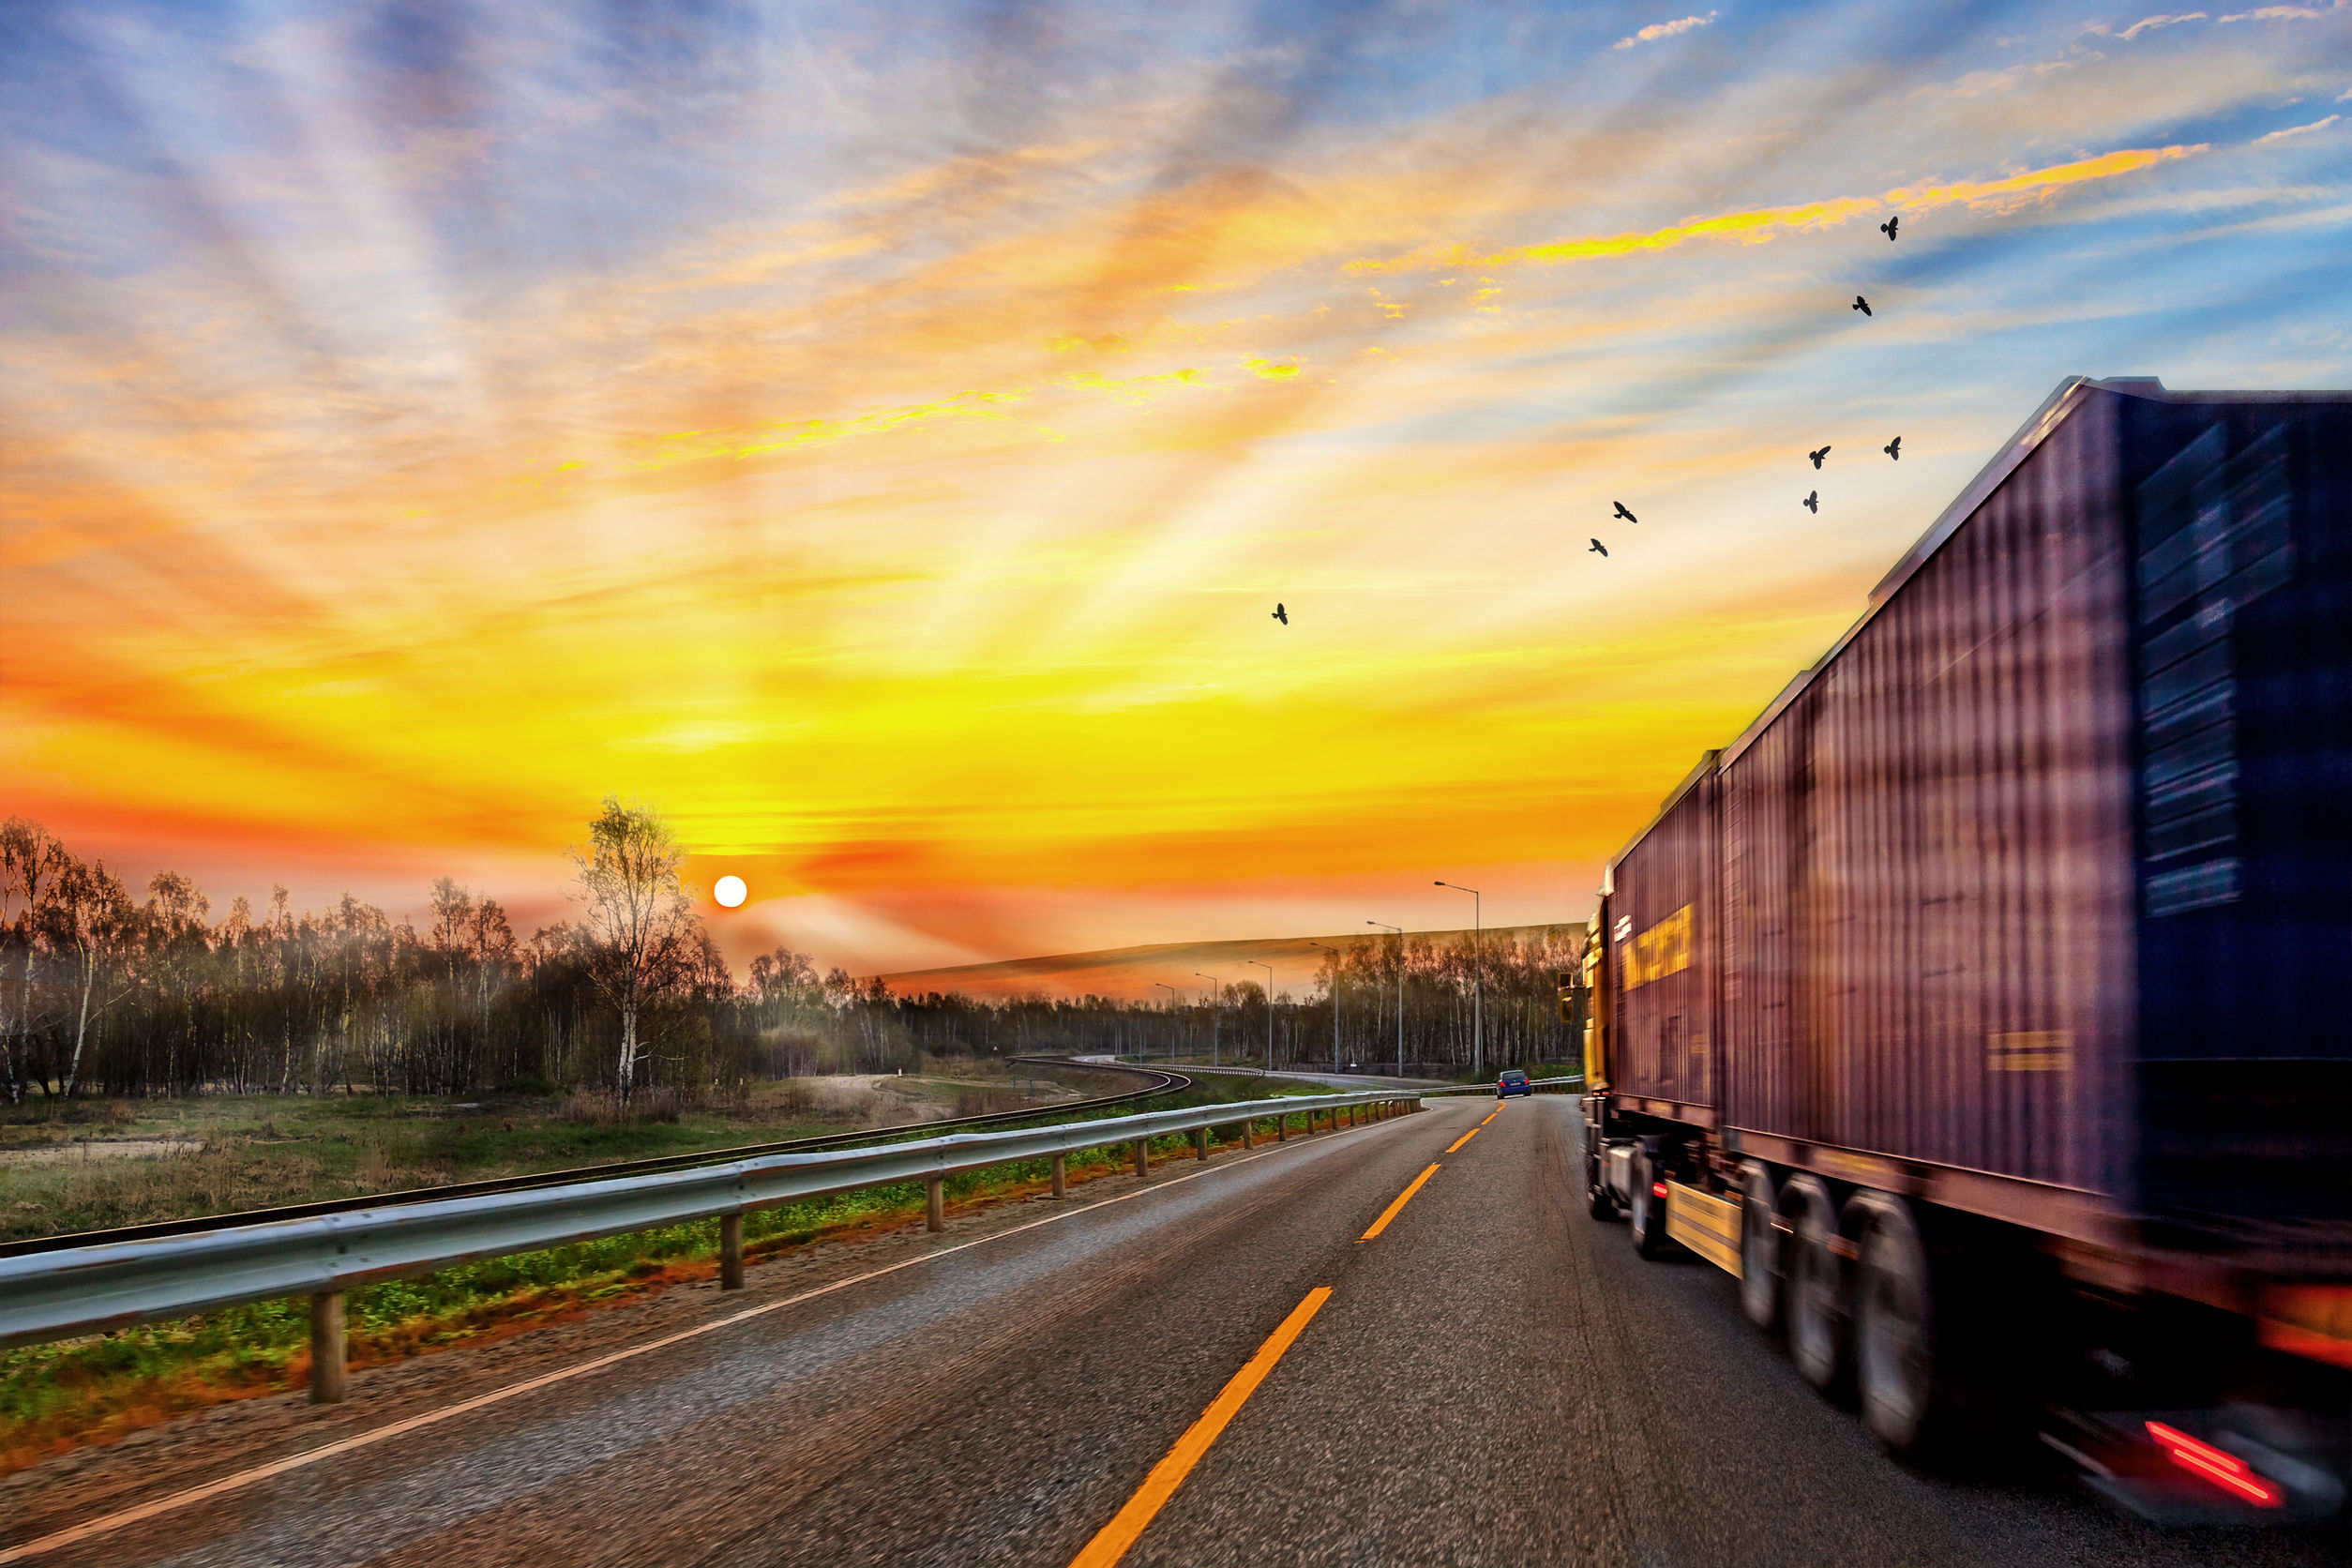 Compliance operation targeting trucking companies